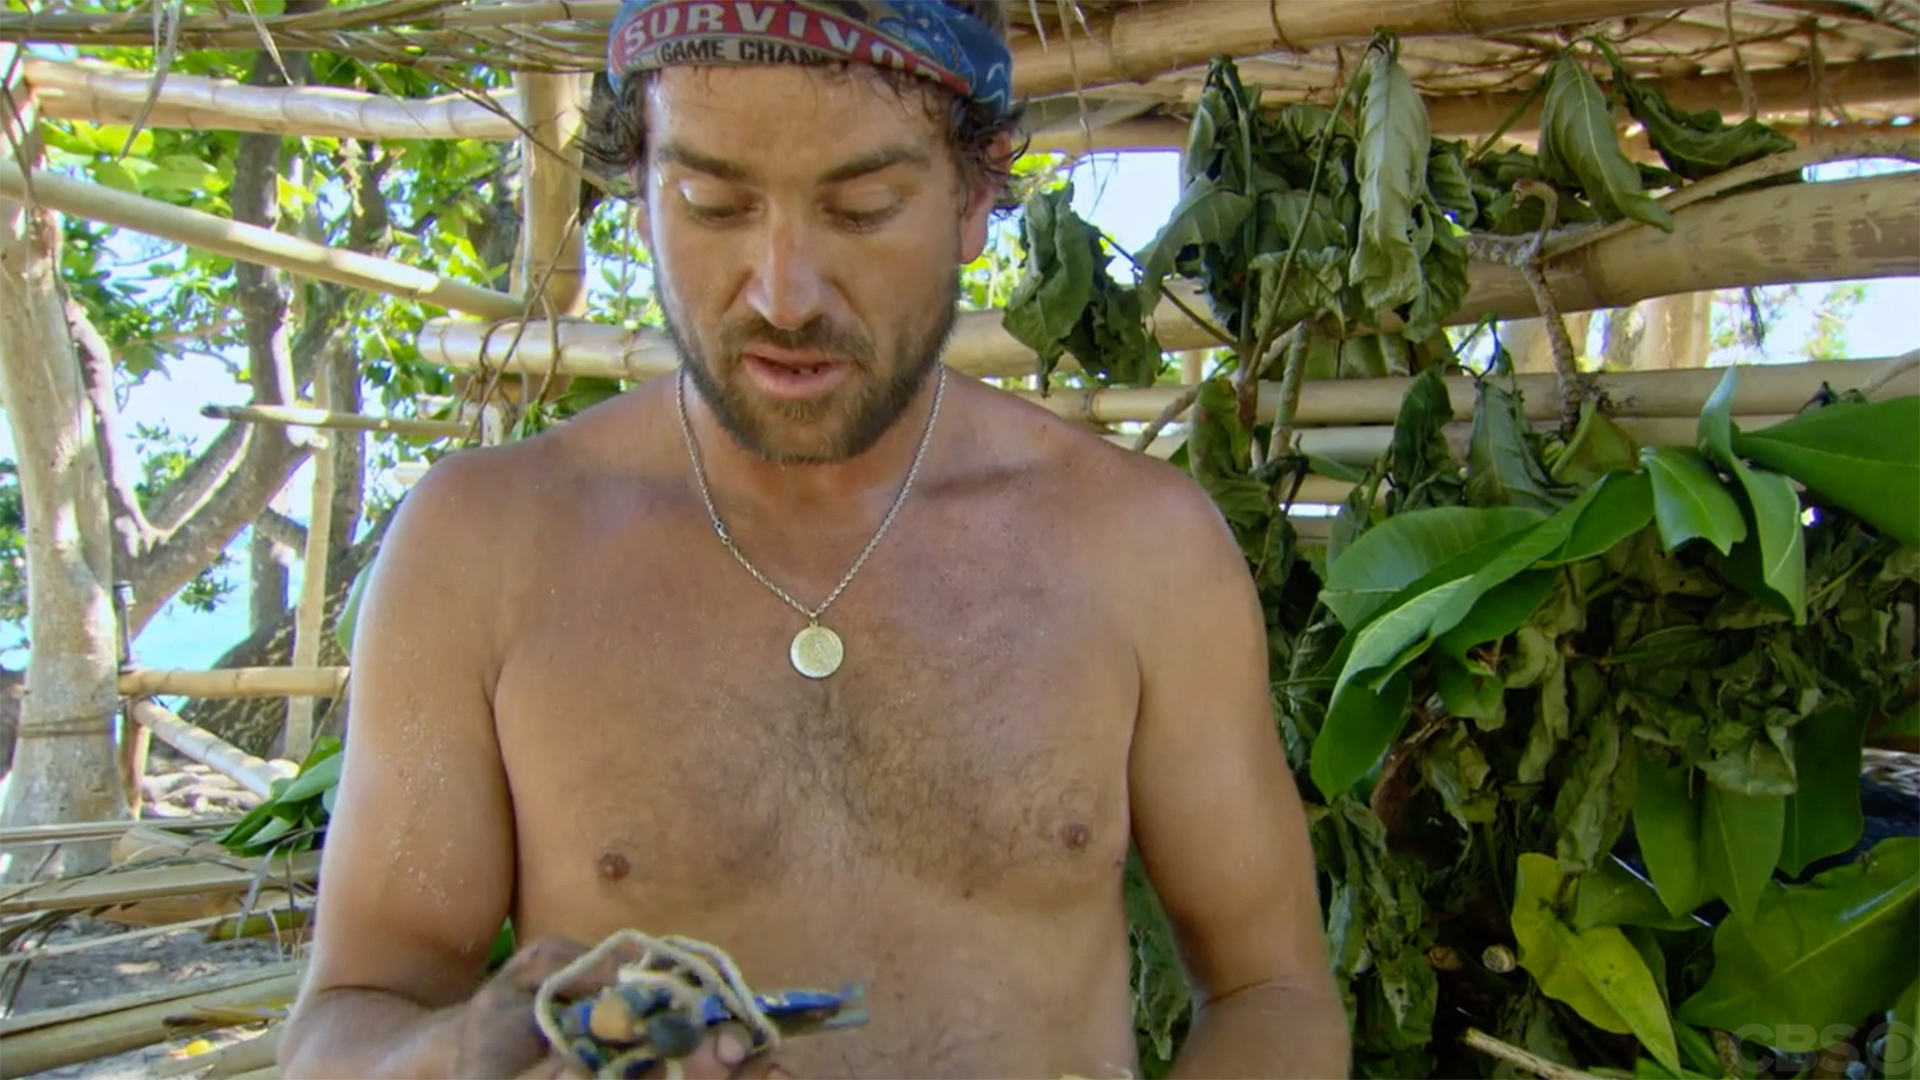 J.T. Thomas' hidden Immunity Idol from Survivor: Game Changers